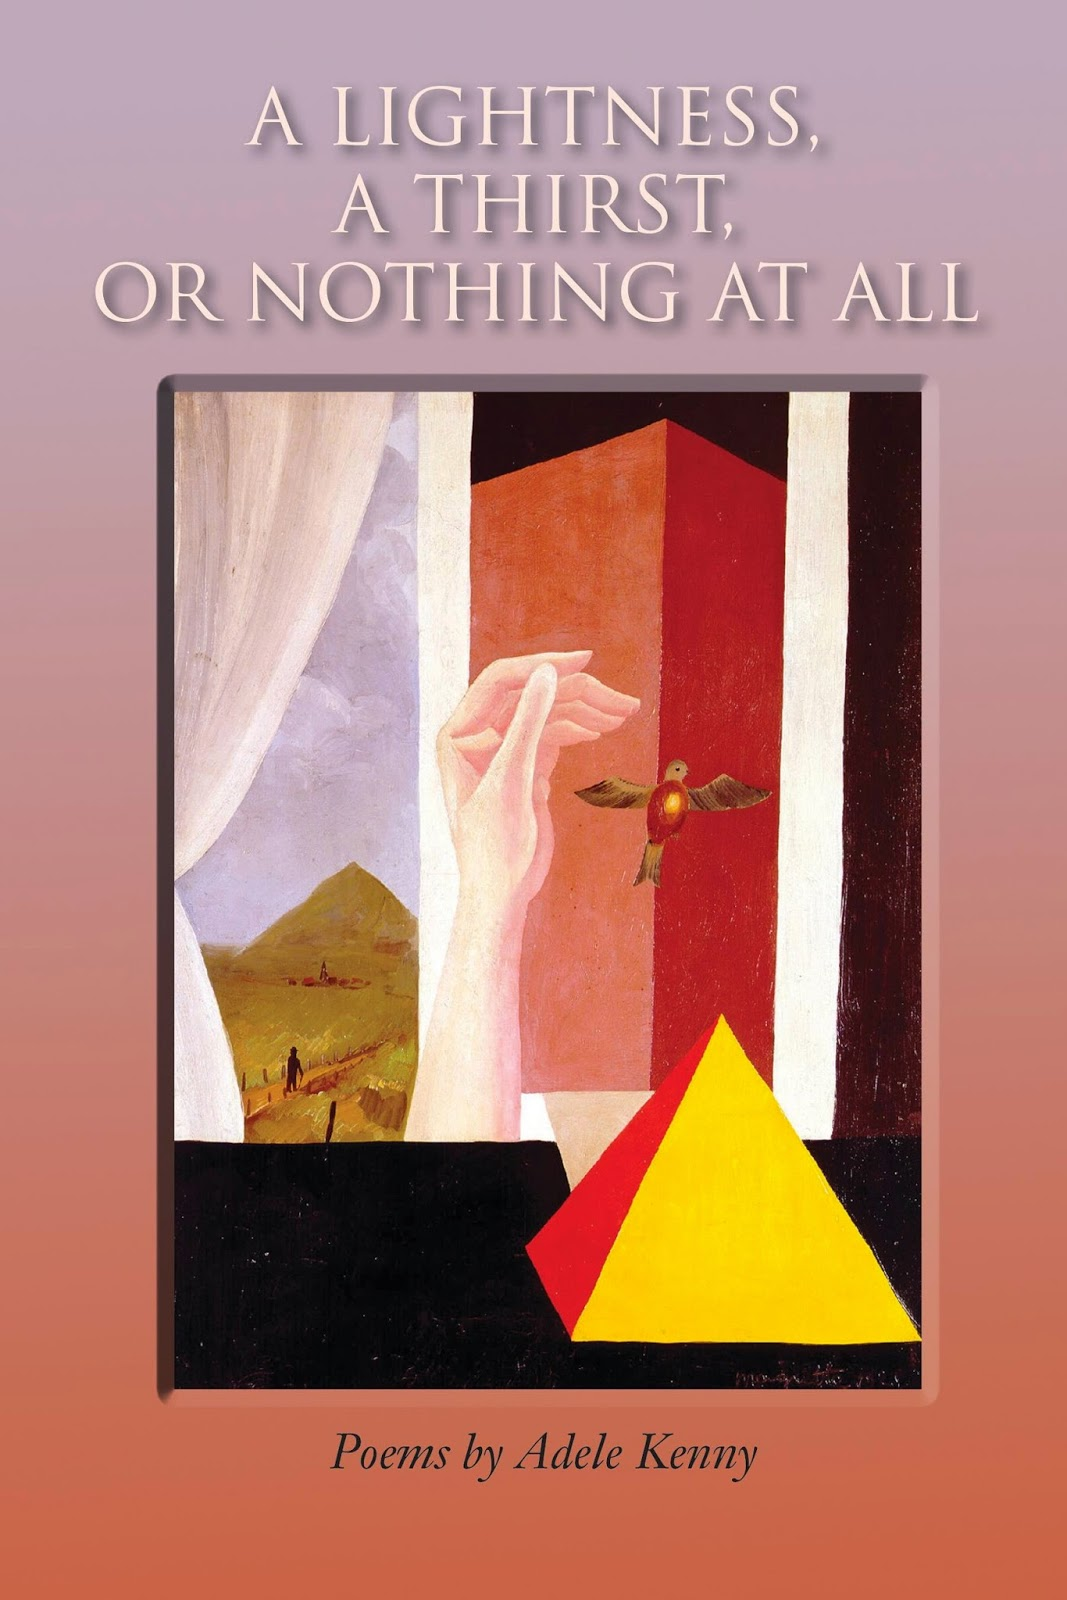 http://www.amazon.com/Lightness-Thirst-Nothing-All-Poems/dp/156649396X